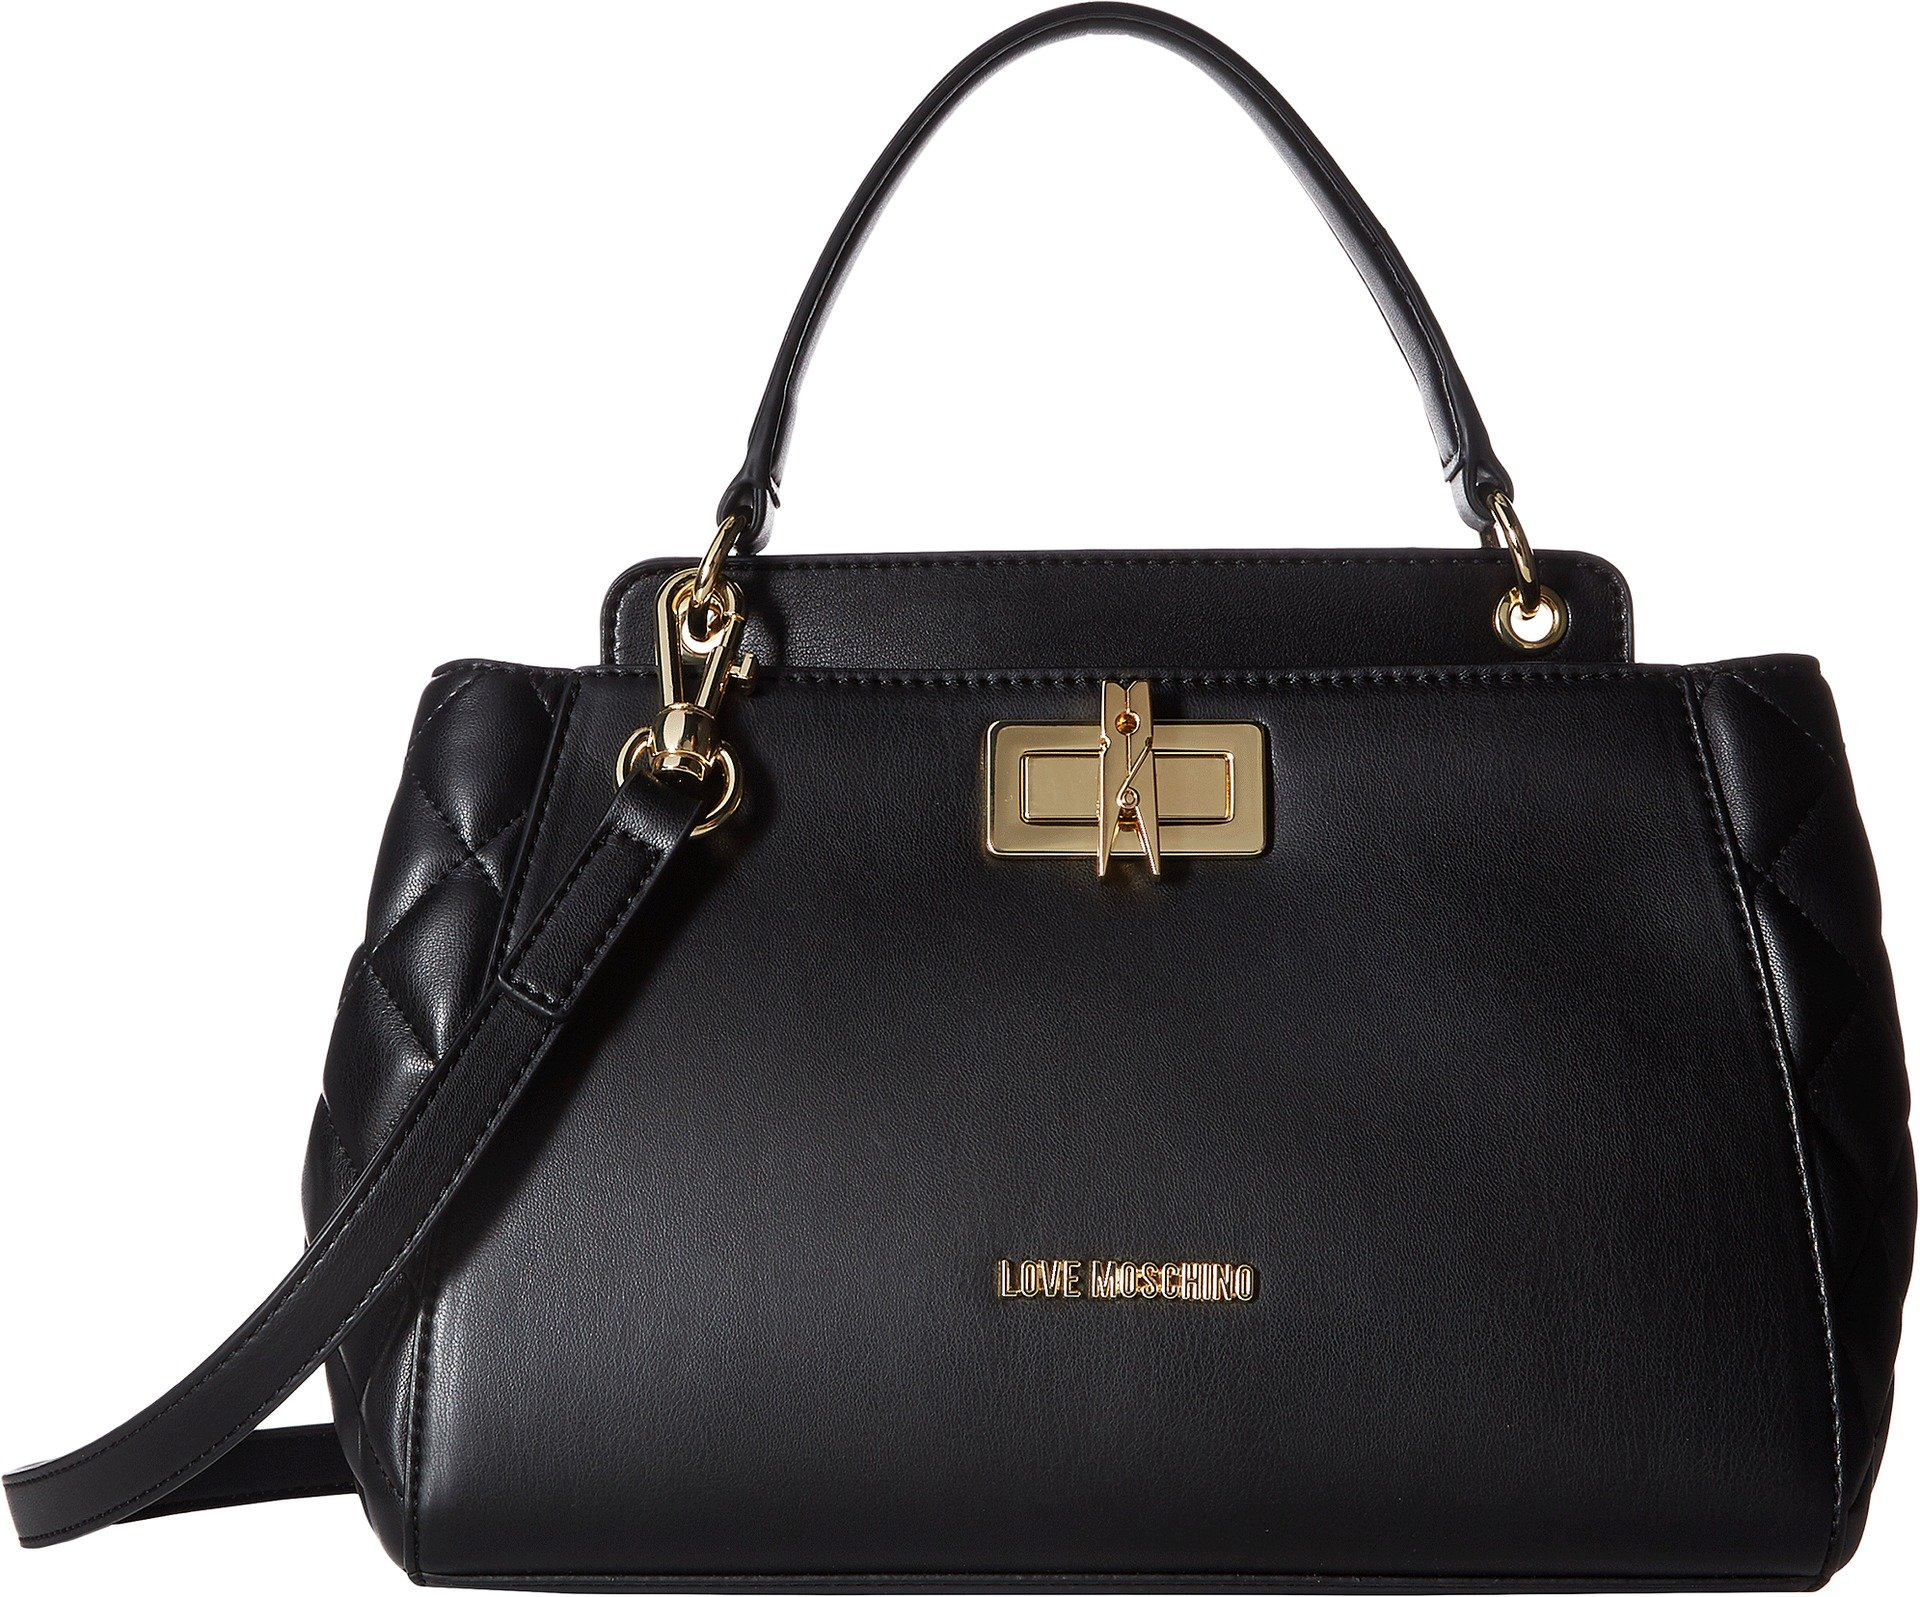 LOVE Moschino Women's Fashion Quilted Top Handbag Black One Size